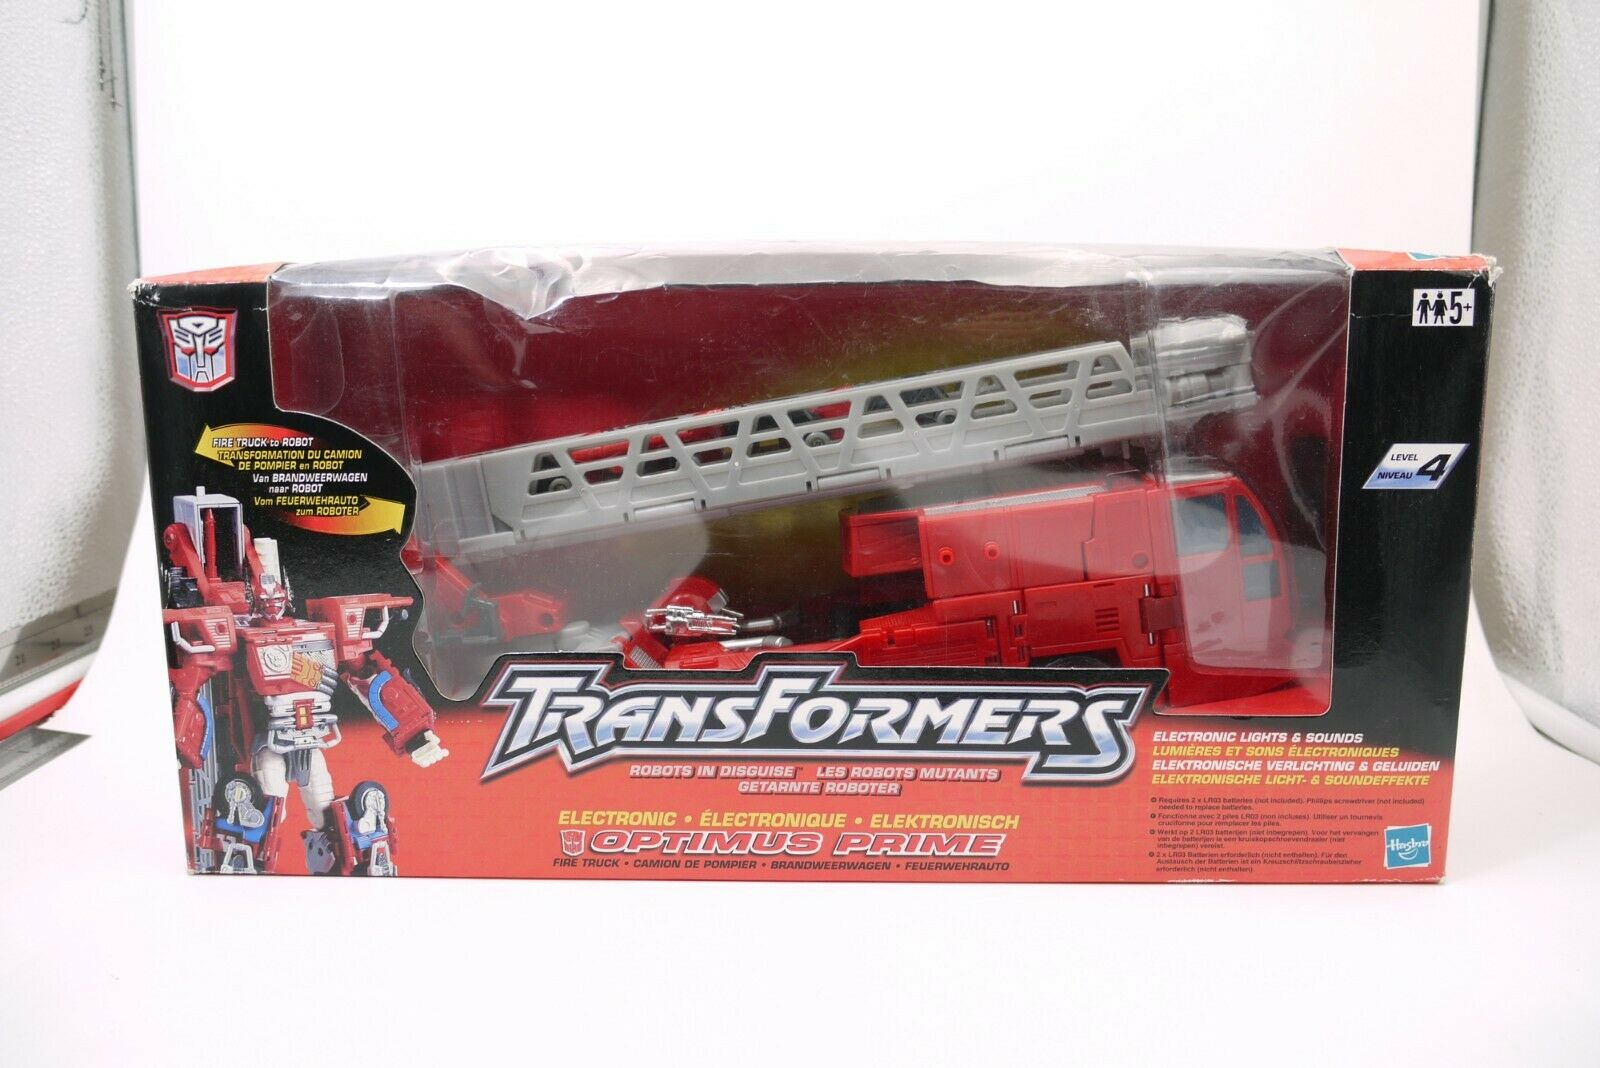 Transformers Robot in Disguise 2001 OPTIMUS PRIME FIRE TRUCK FIGURE MIB